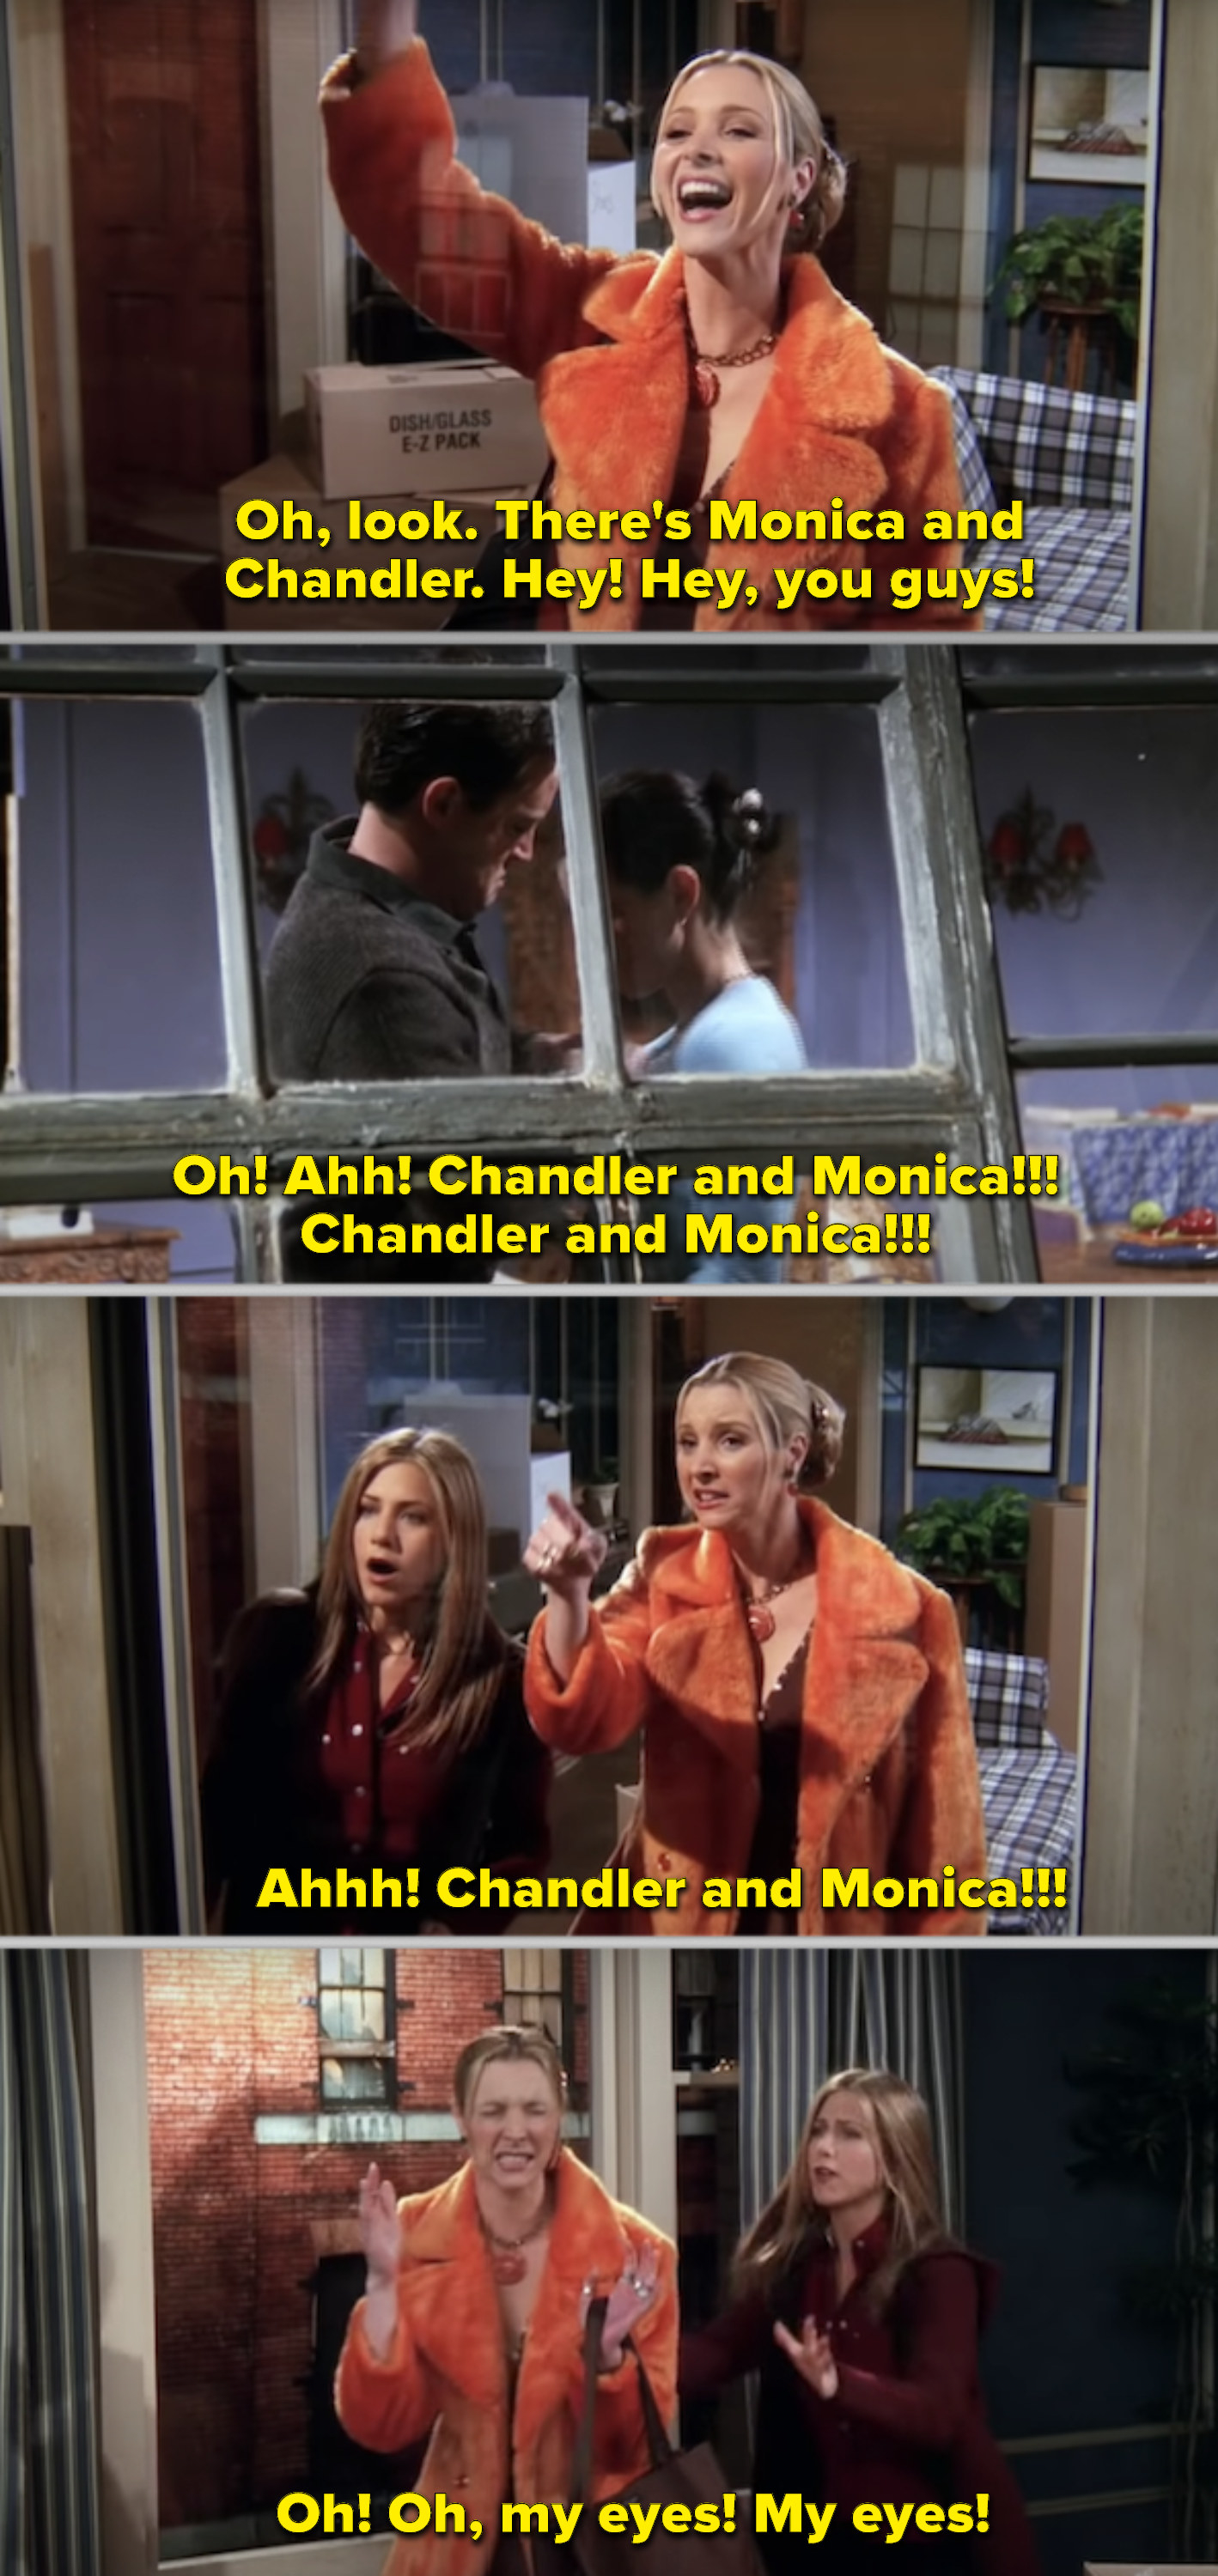 Phoebe screaming in Ugly Naked Guy's apartment after catching Chandler and Monica having sex across the street